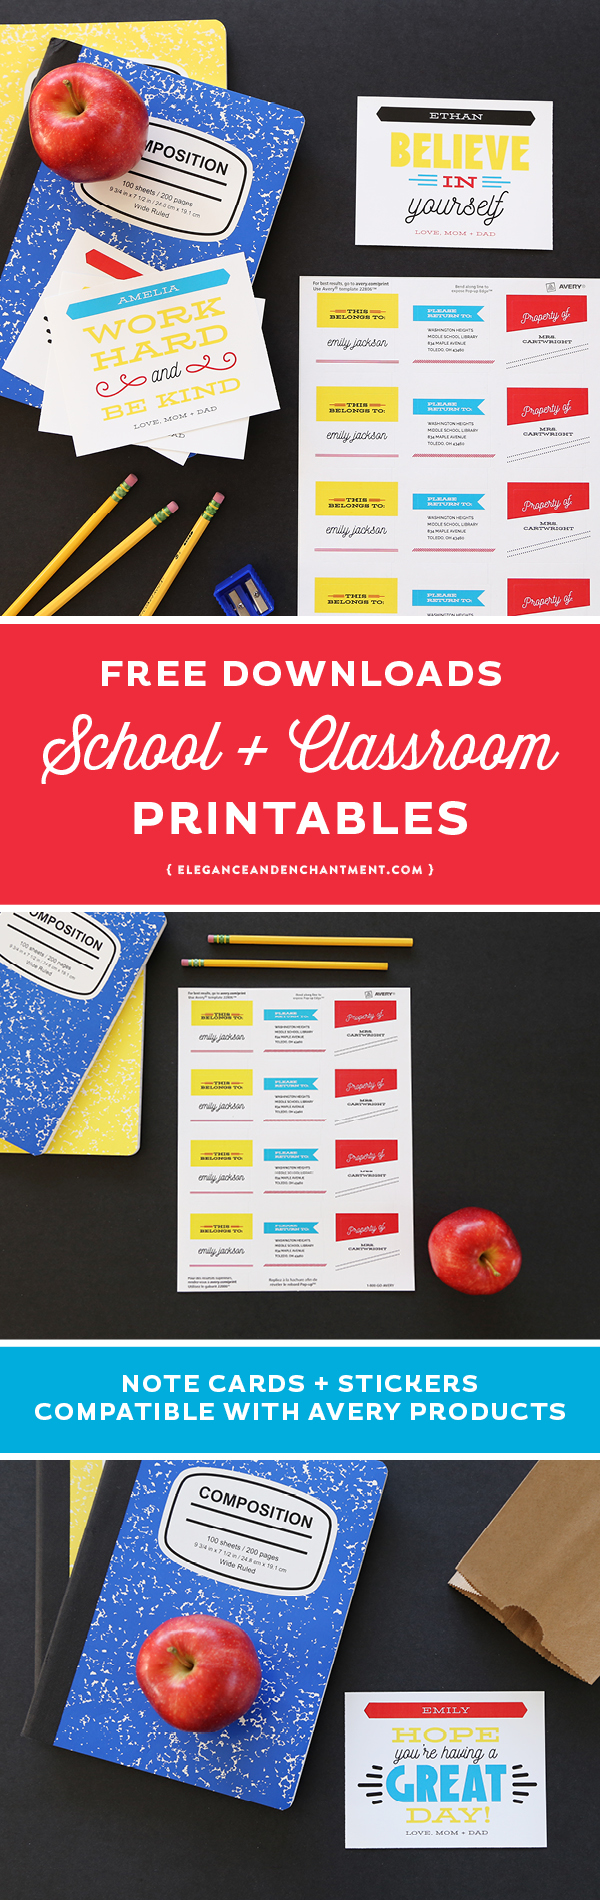 "Back to School Printables for students and teachers. Download all of these classroom goodies for free! Includes printable-customizable lunch box notes and printable ""property of"" stickers. Compatible with Avery Products 8387 and 22806 for easy printing! Designs from Elegance and Enchantment in partnership with Avery."